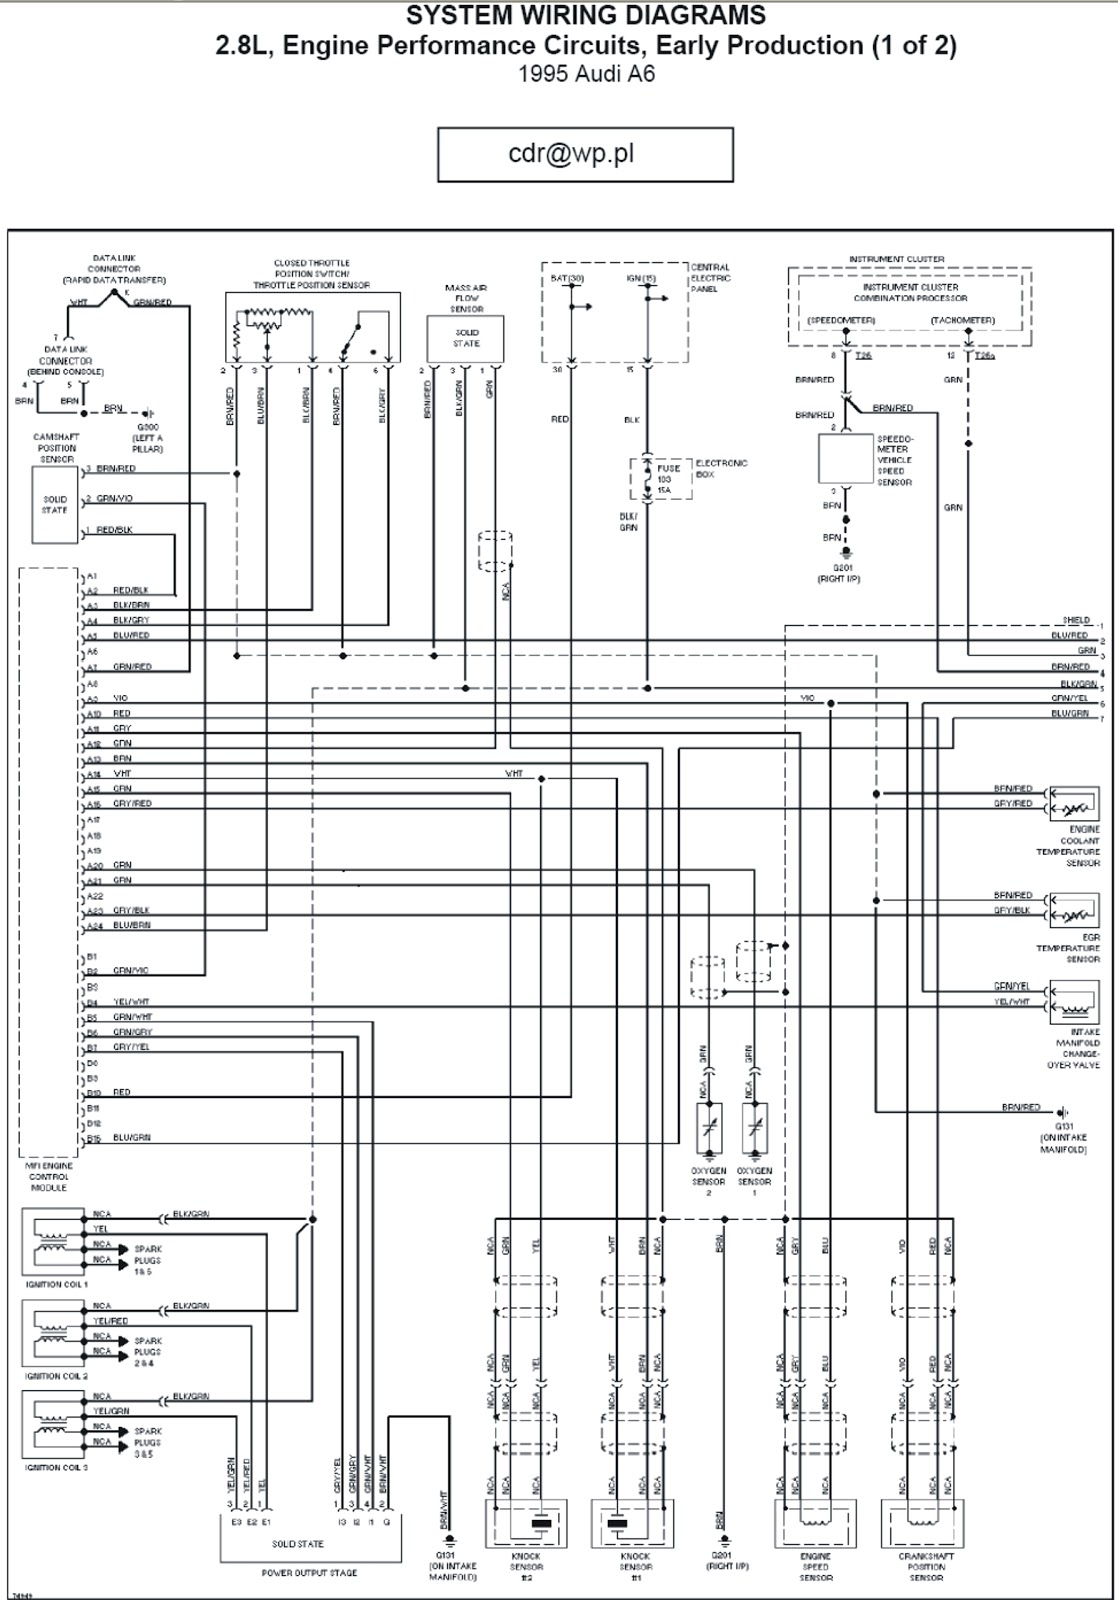 2001 A6 Wiring Diagram Ecu Everything About 01 Bmw X5 Vacuum Schematic 2000 Audi Tt Location Free Download Rh 83 Codingcommunity De 4age 16v